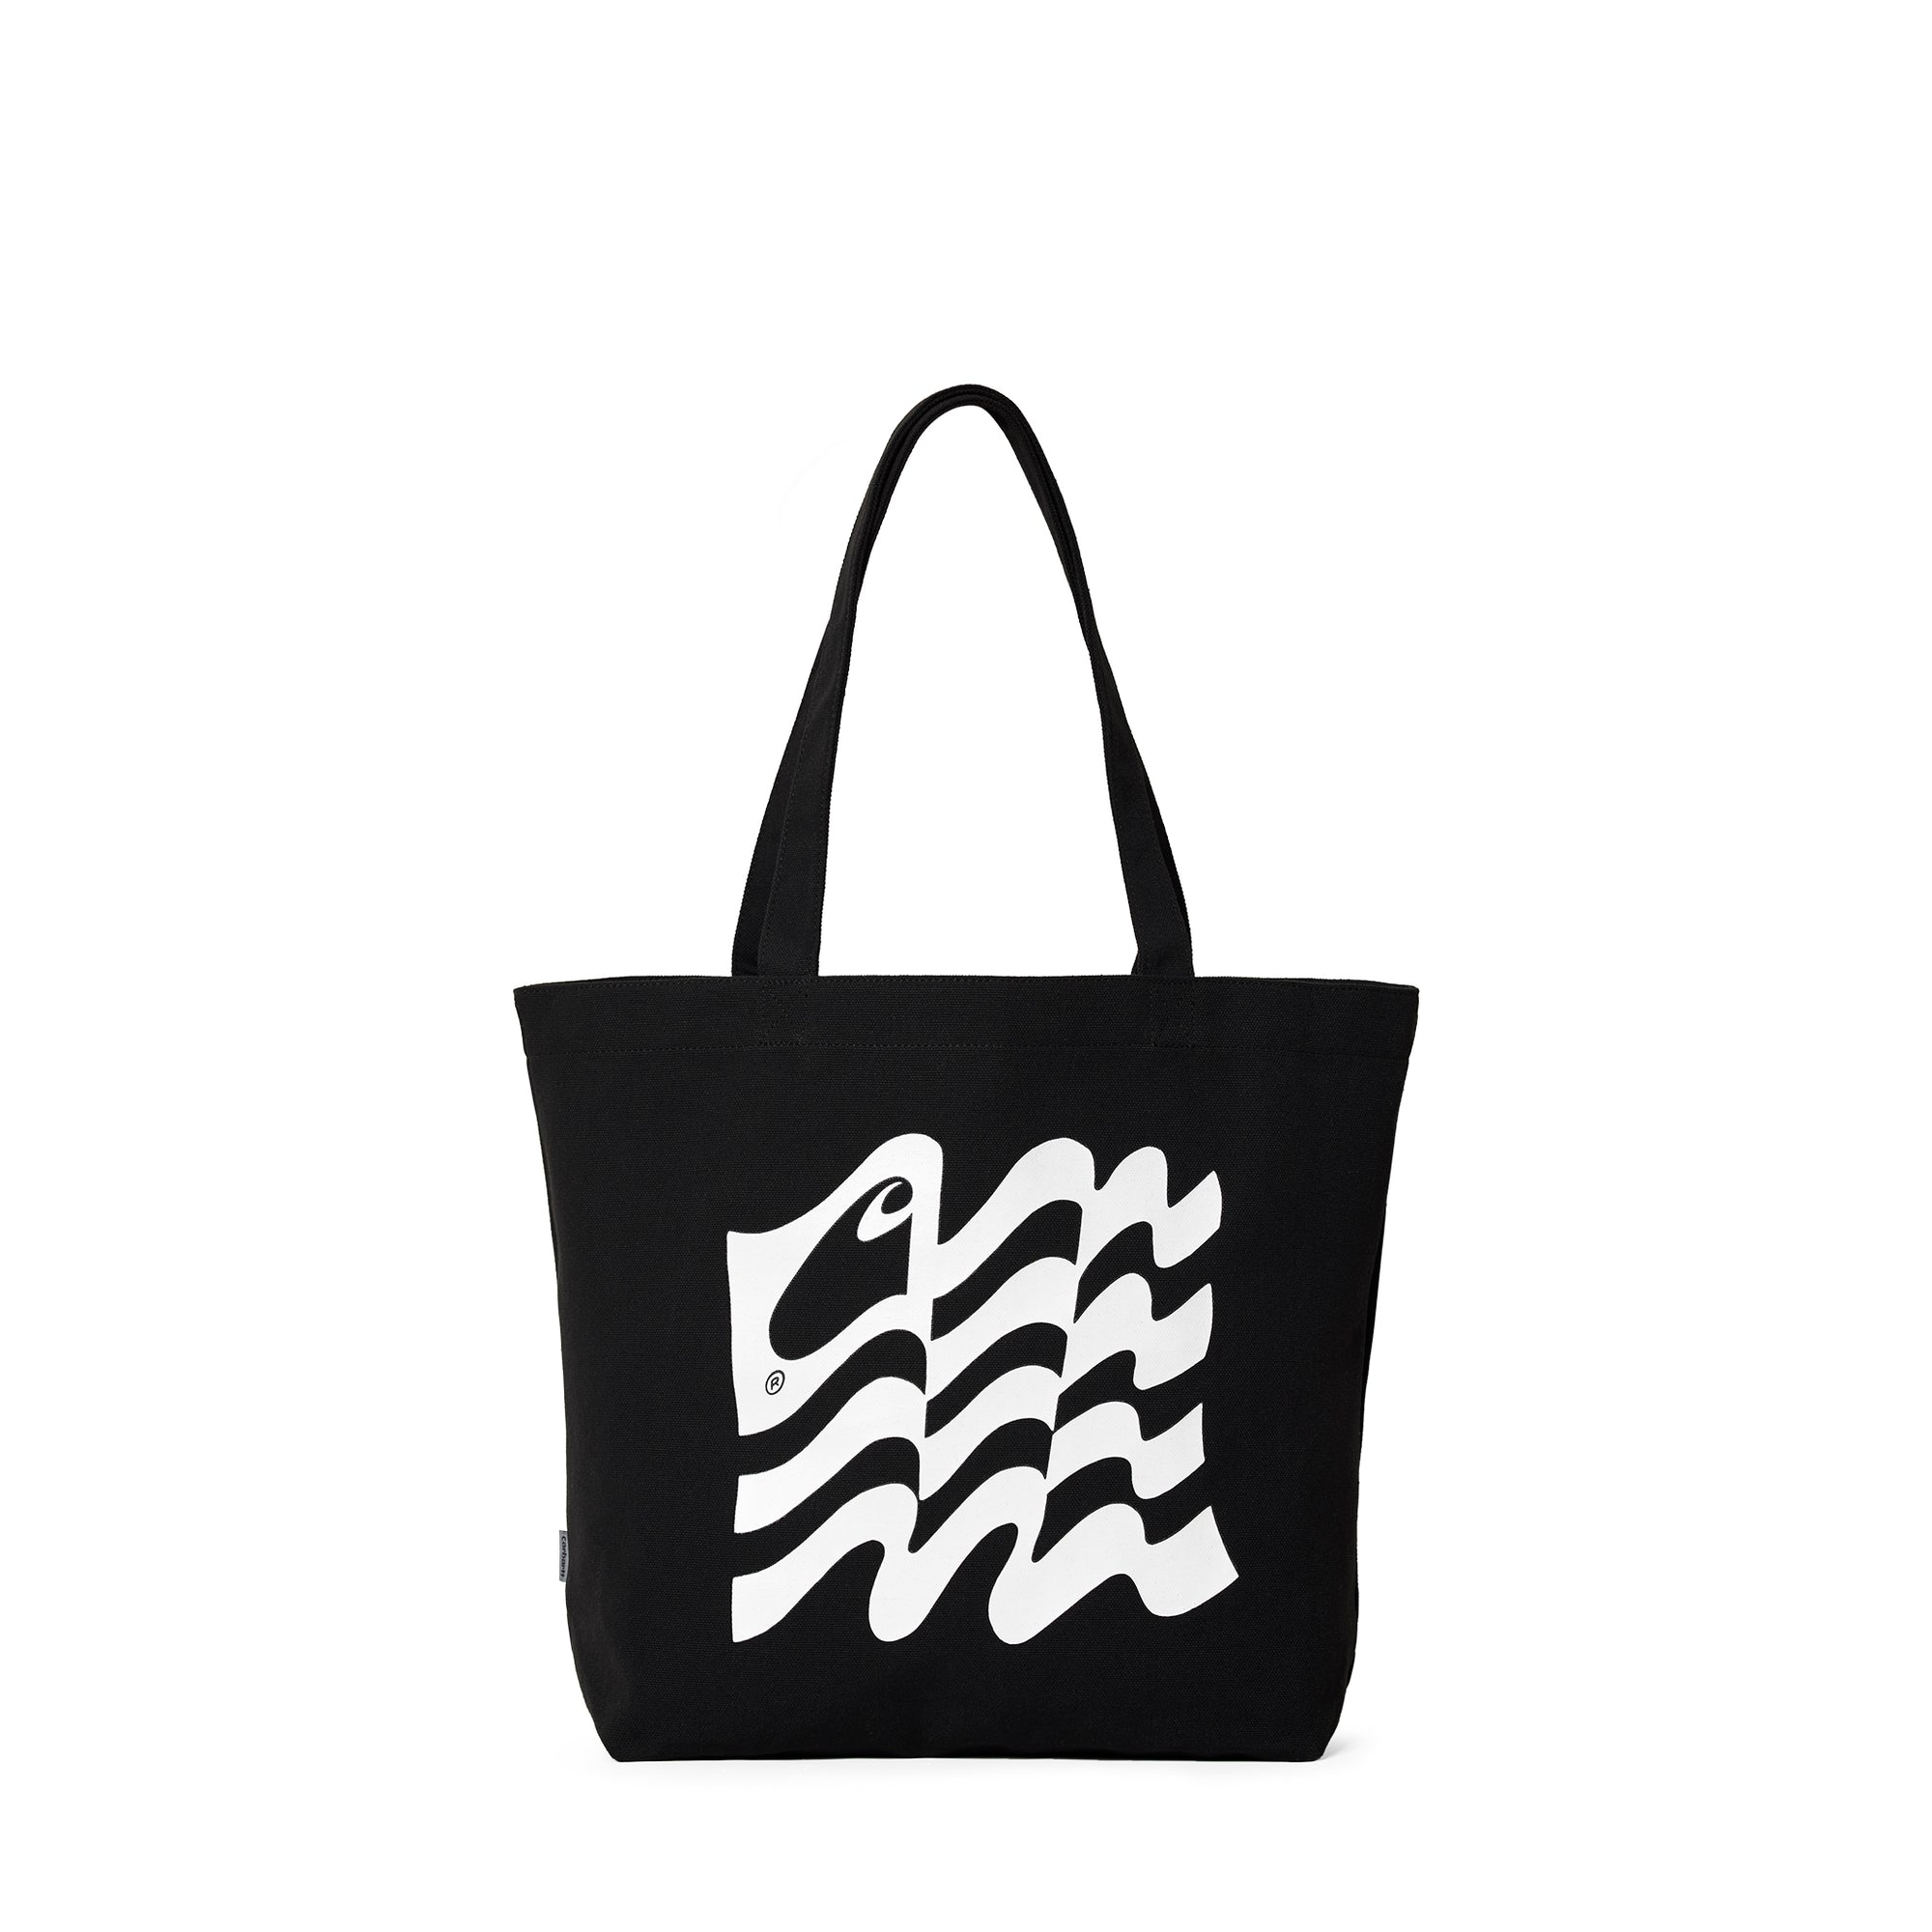 Carhartt WIP Wavy State Tote: Black / White - The Union Project